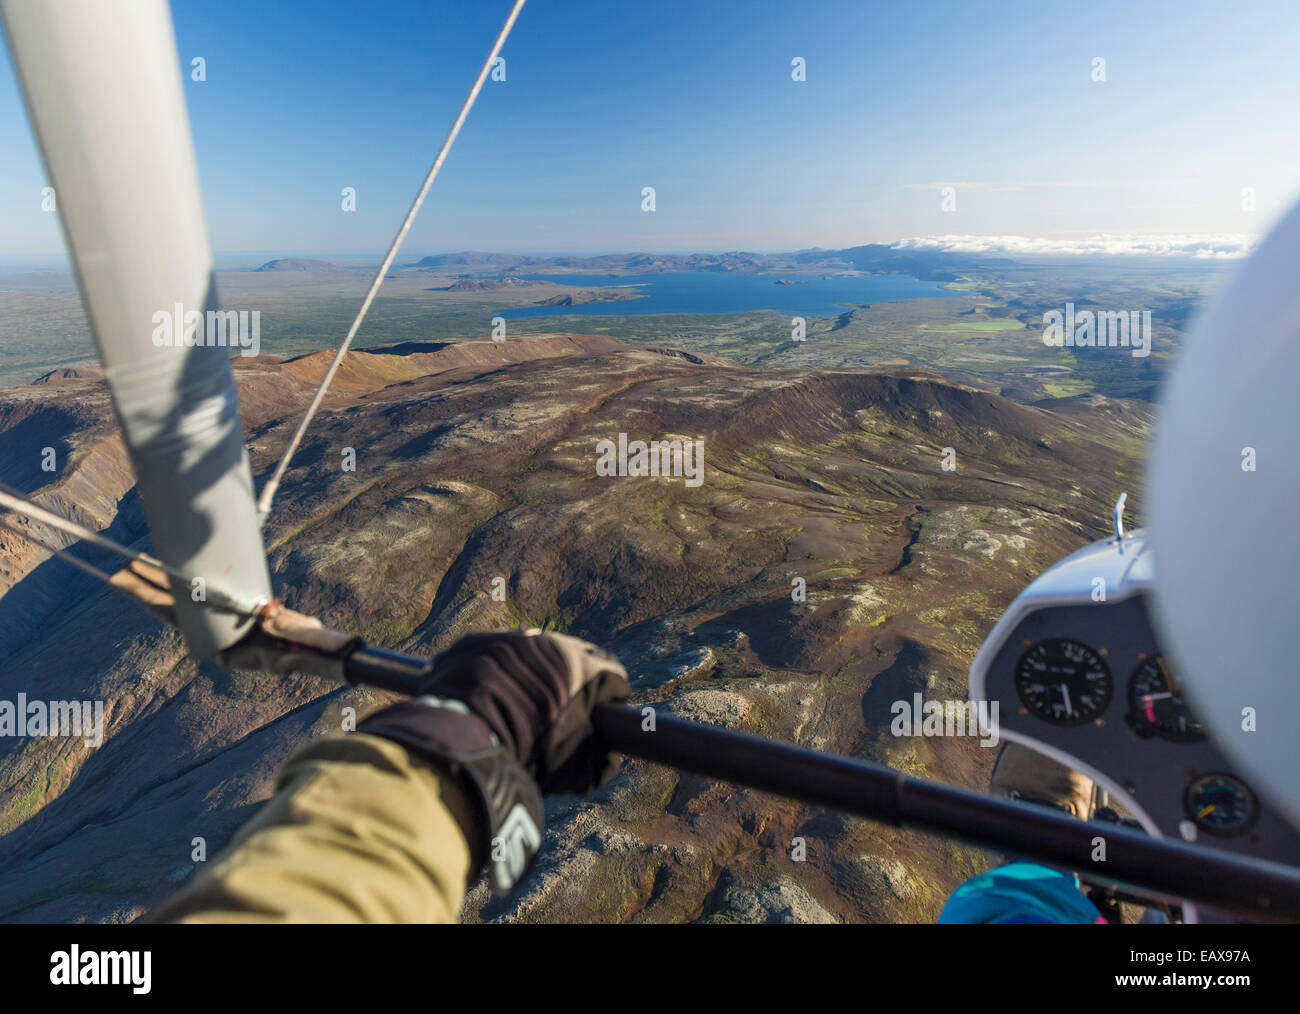 South west Iceland between Reykjavik and Snaefellsnes, Aerial shots from a small ultra light Plane. - Stock Image